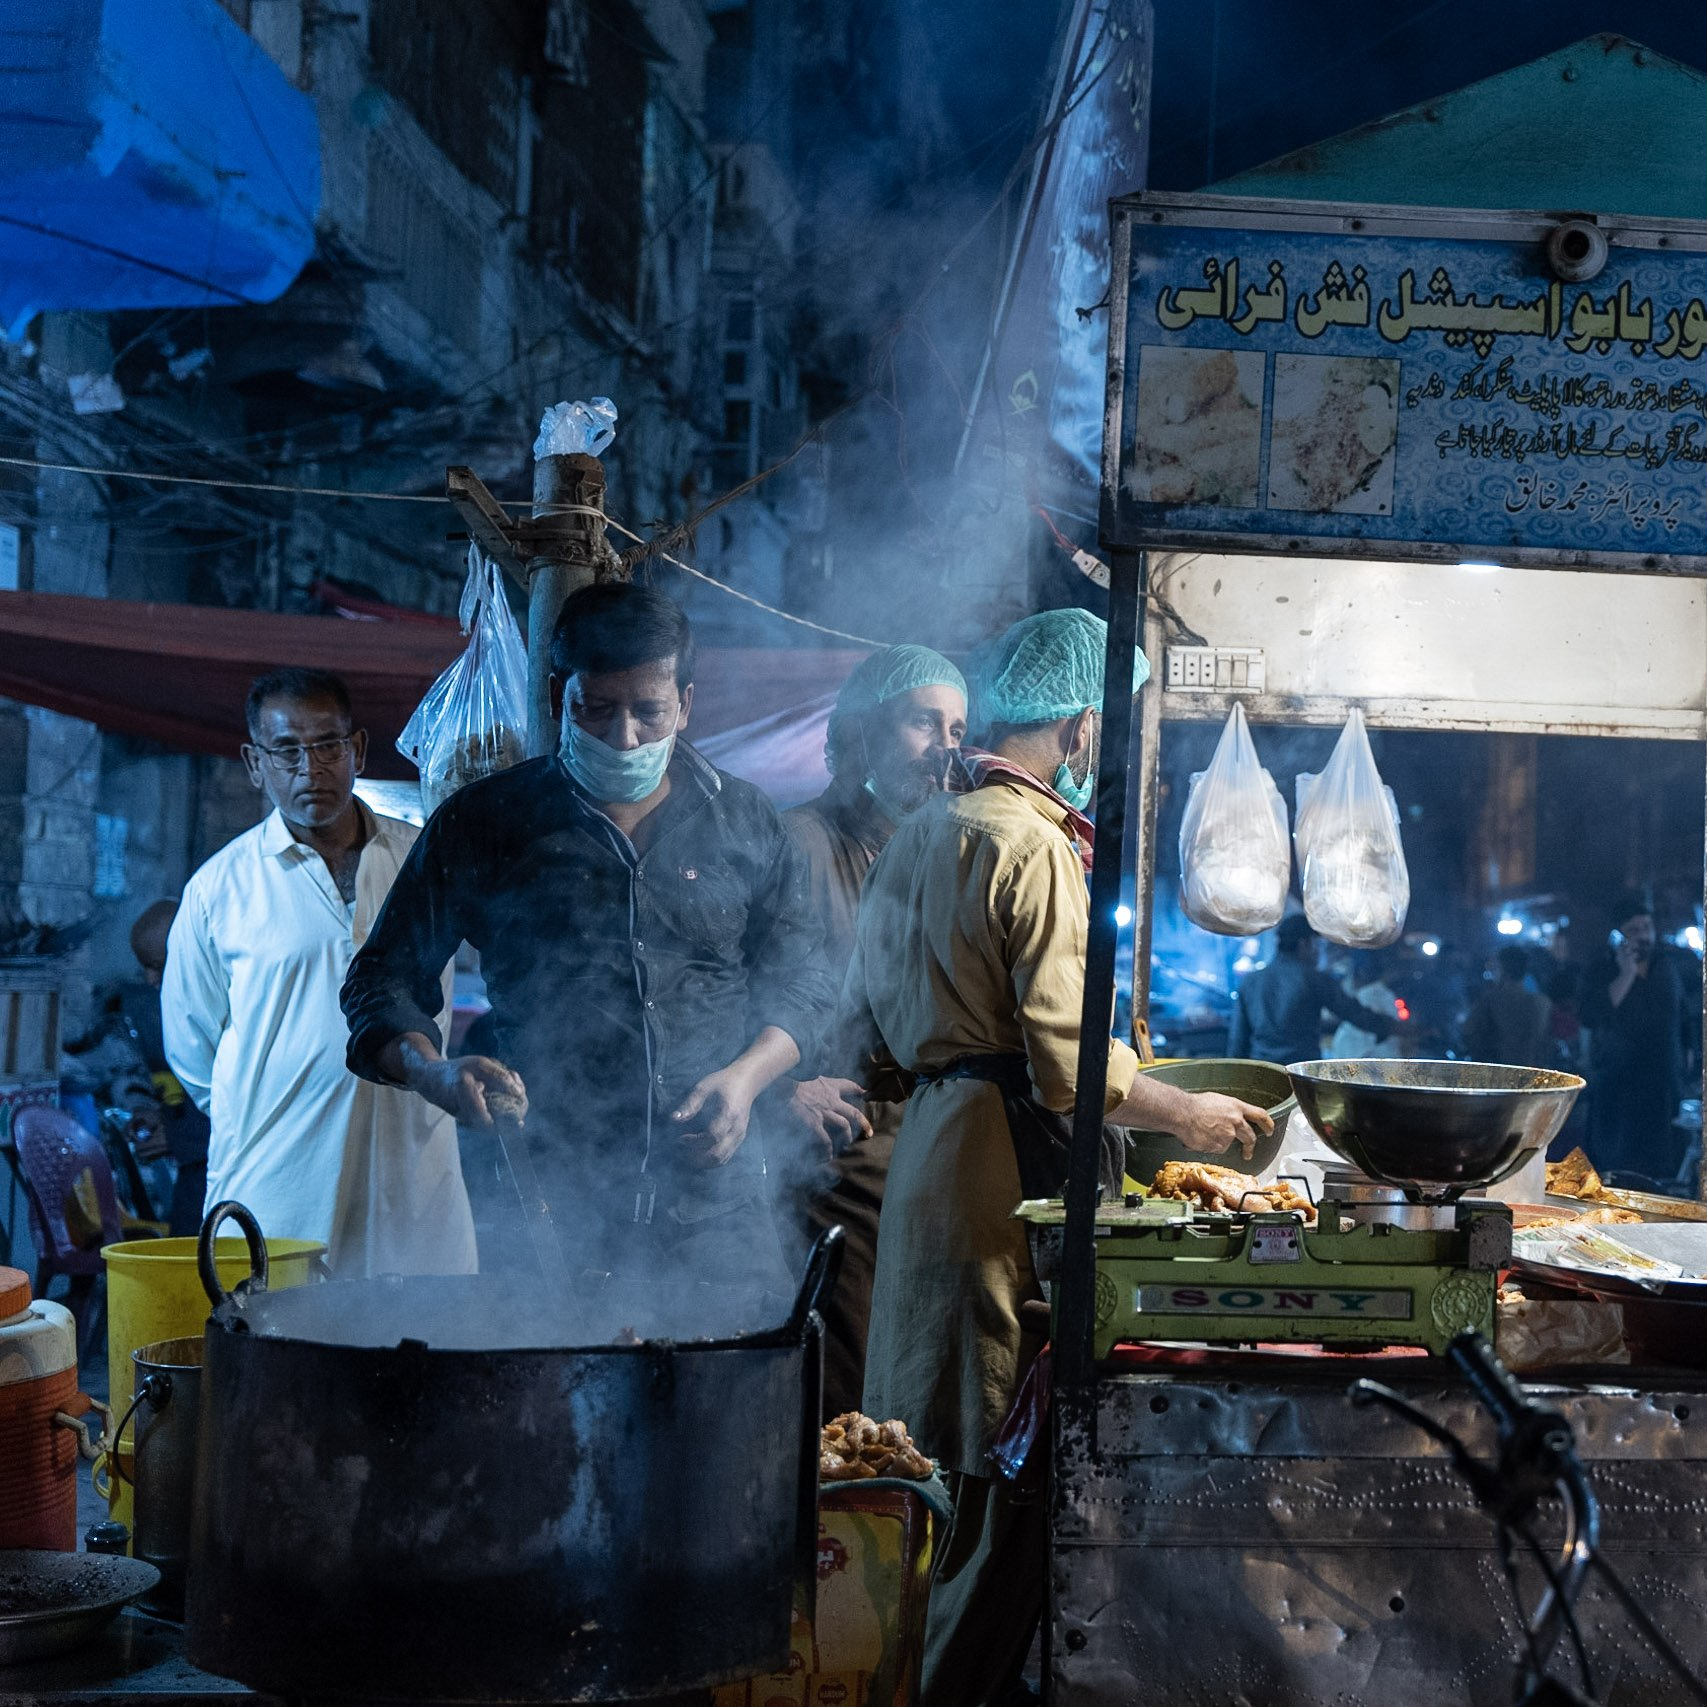 pakistani street food